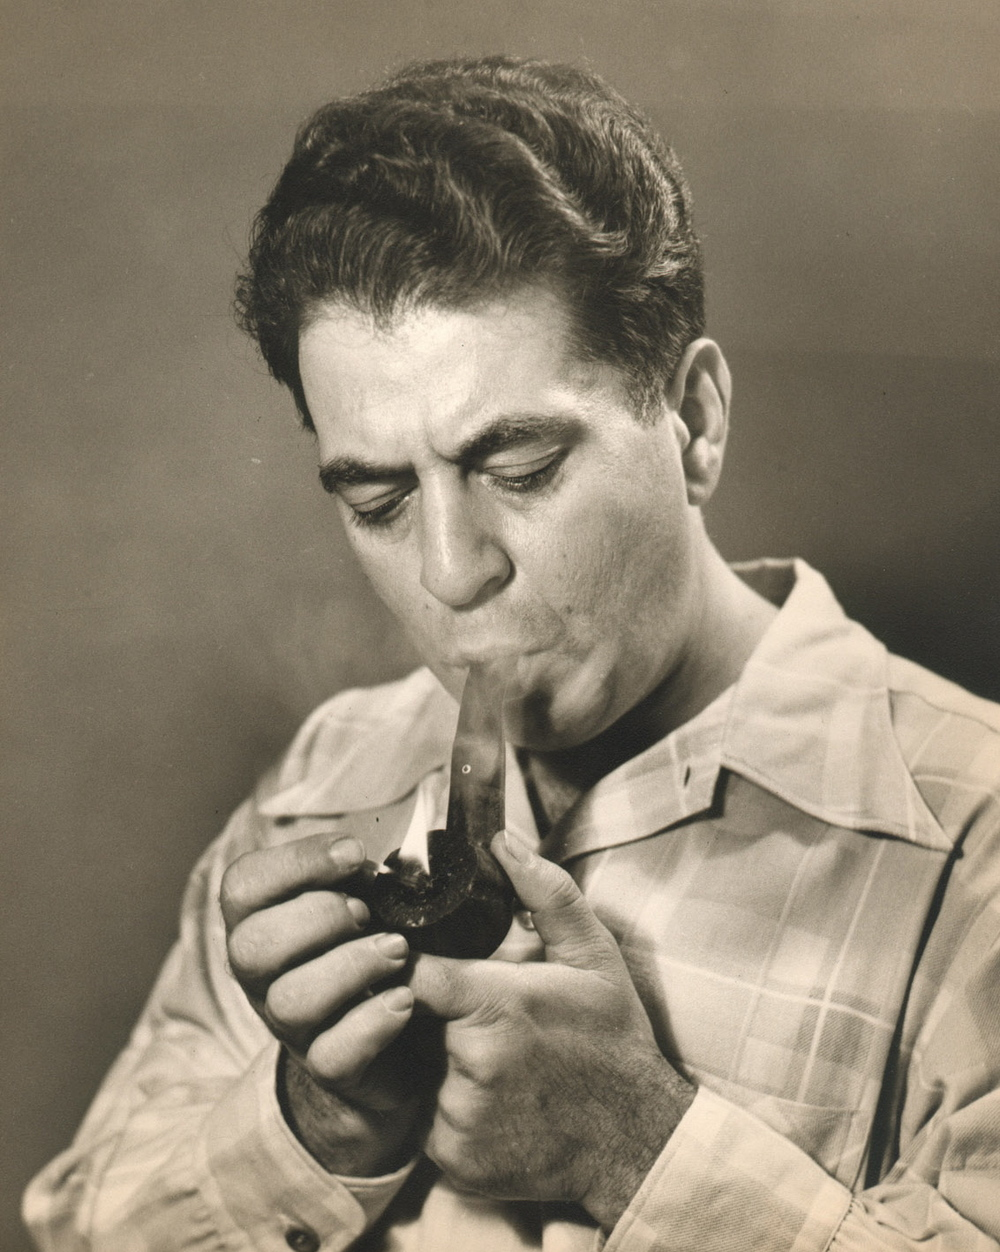 Grampop lighting cigar.jpg